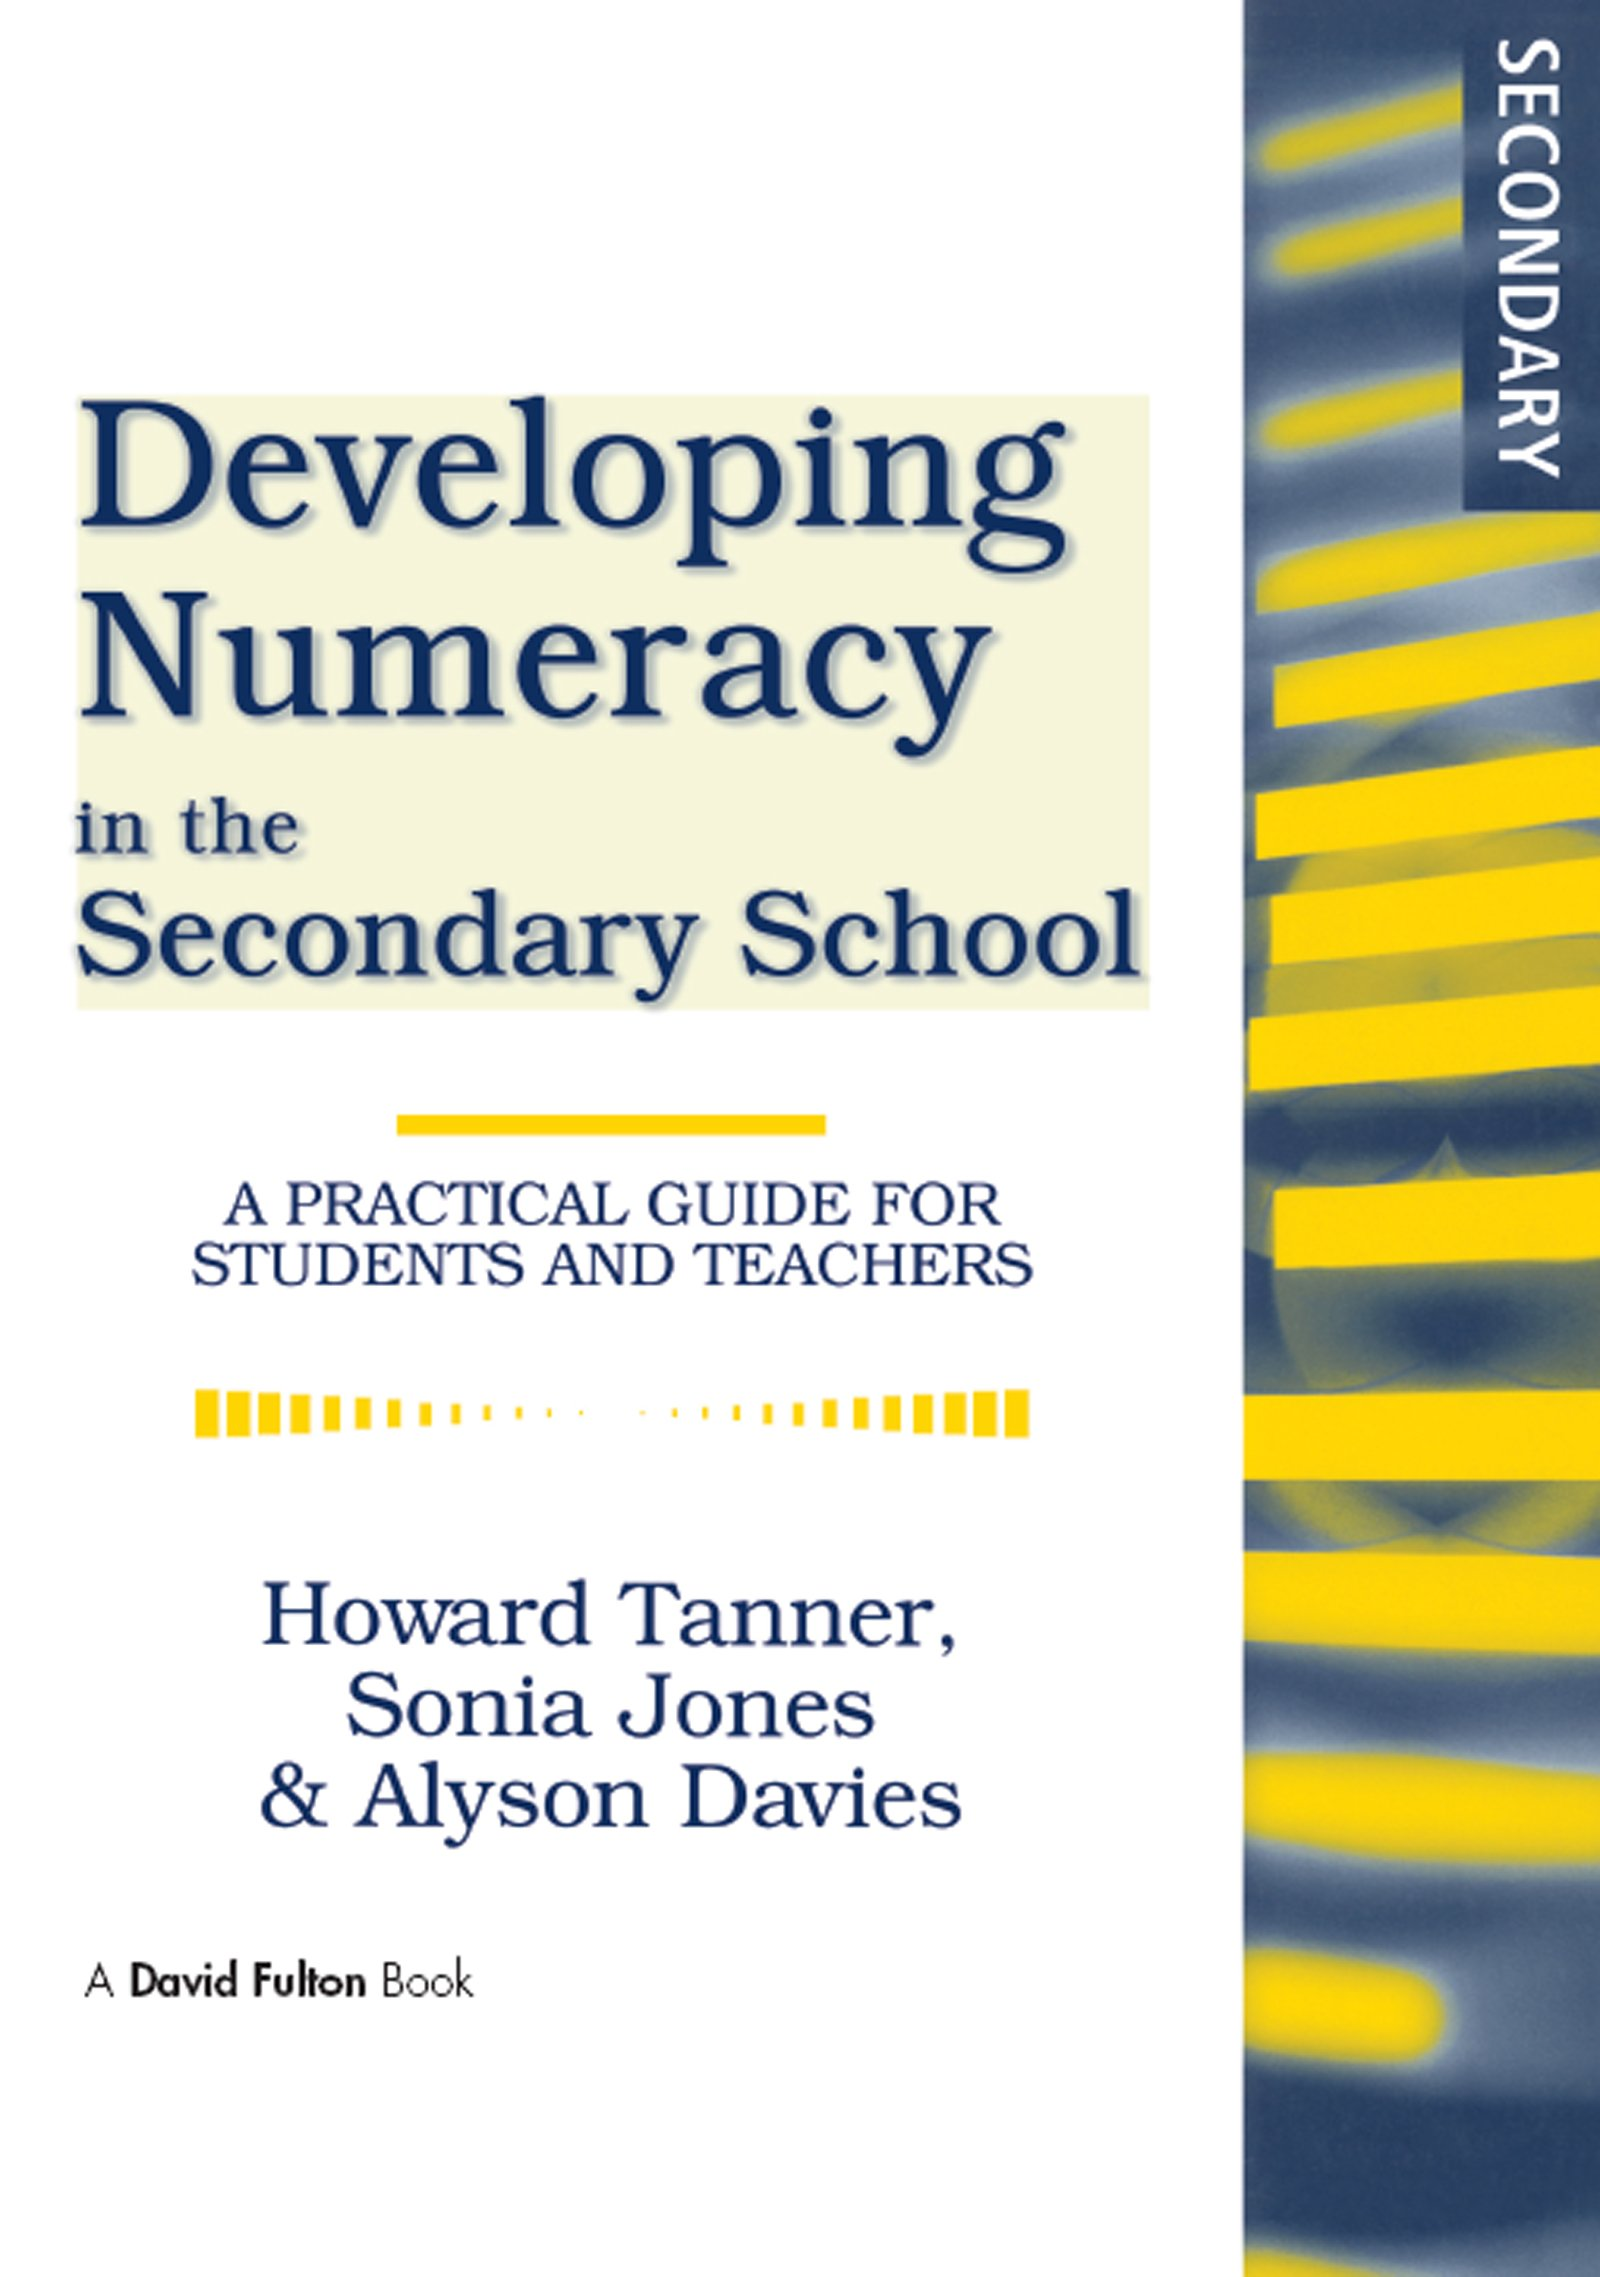 Developing Numeracy in the Secondary School